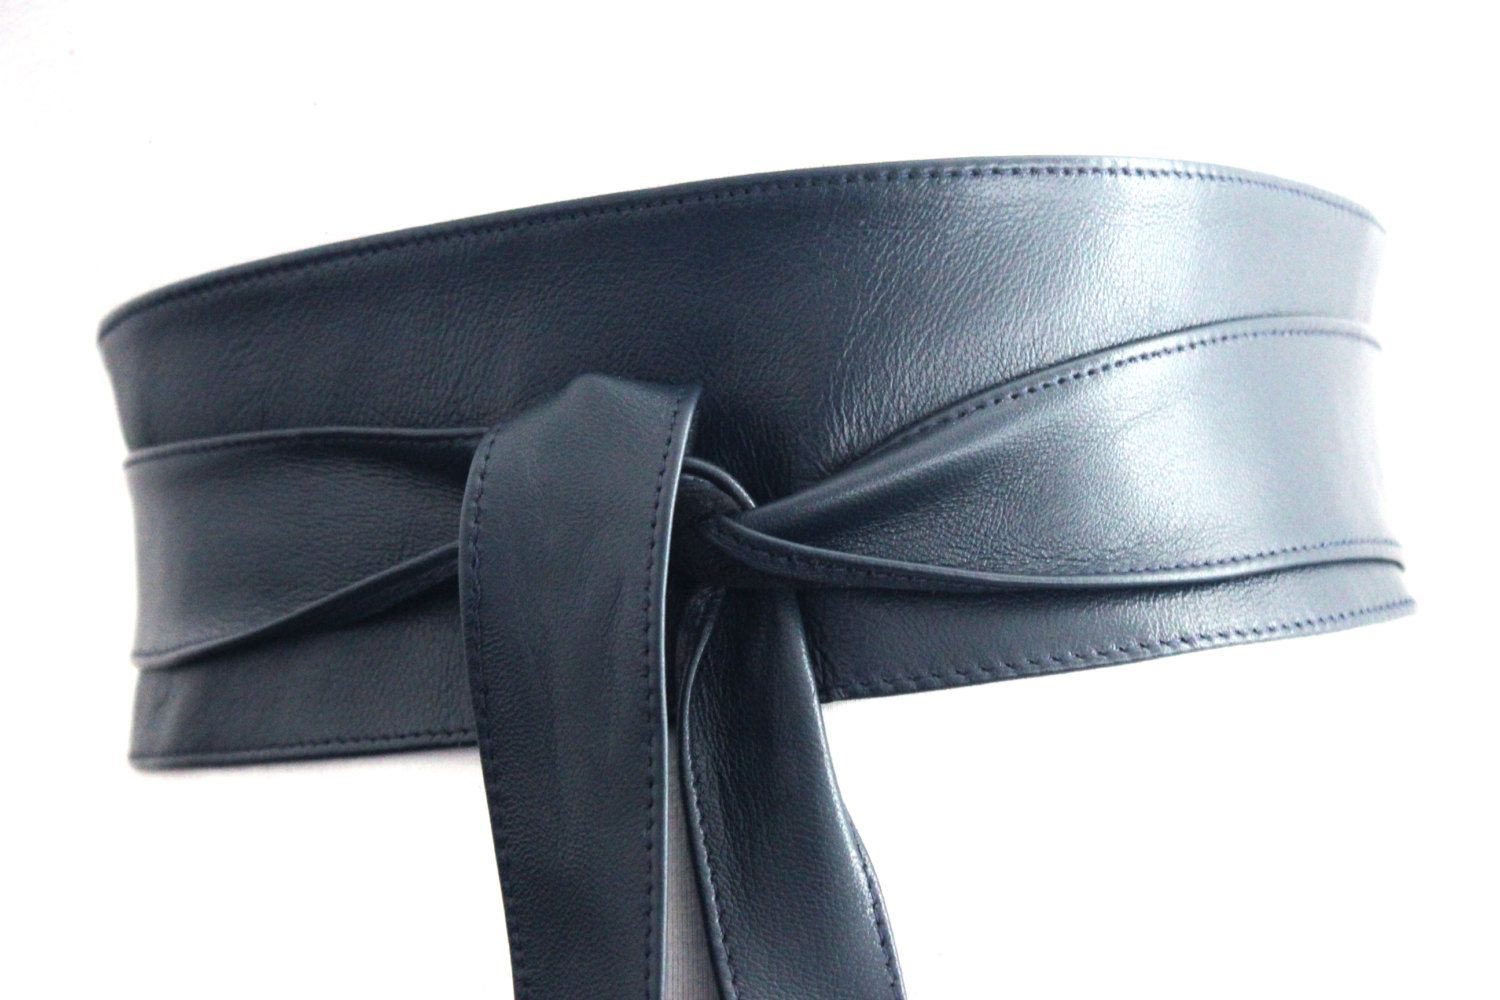 71b2f6fe52b Navy Blue leather obi belt is made from real leather with a smooth finish.